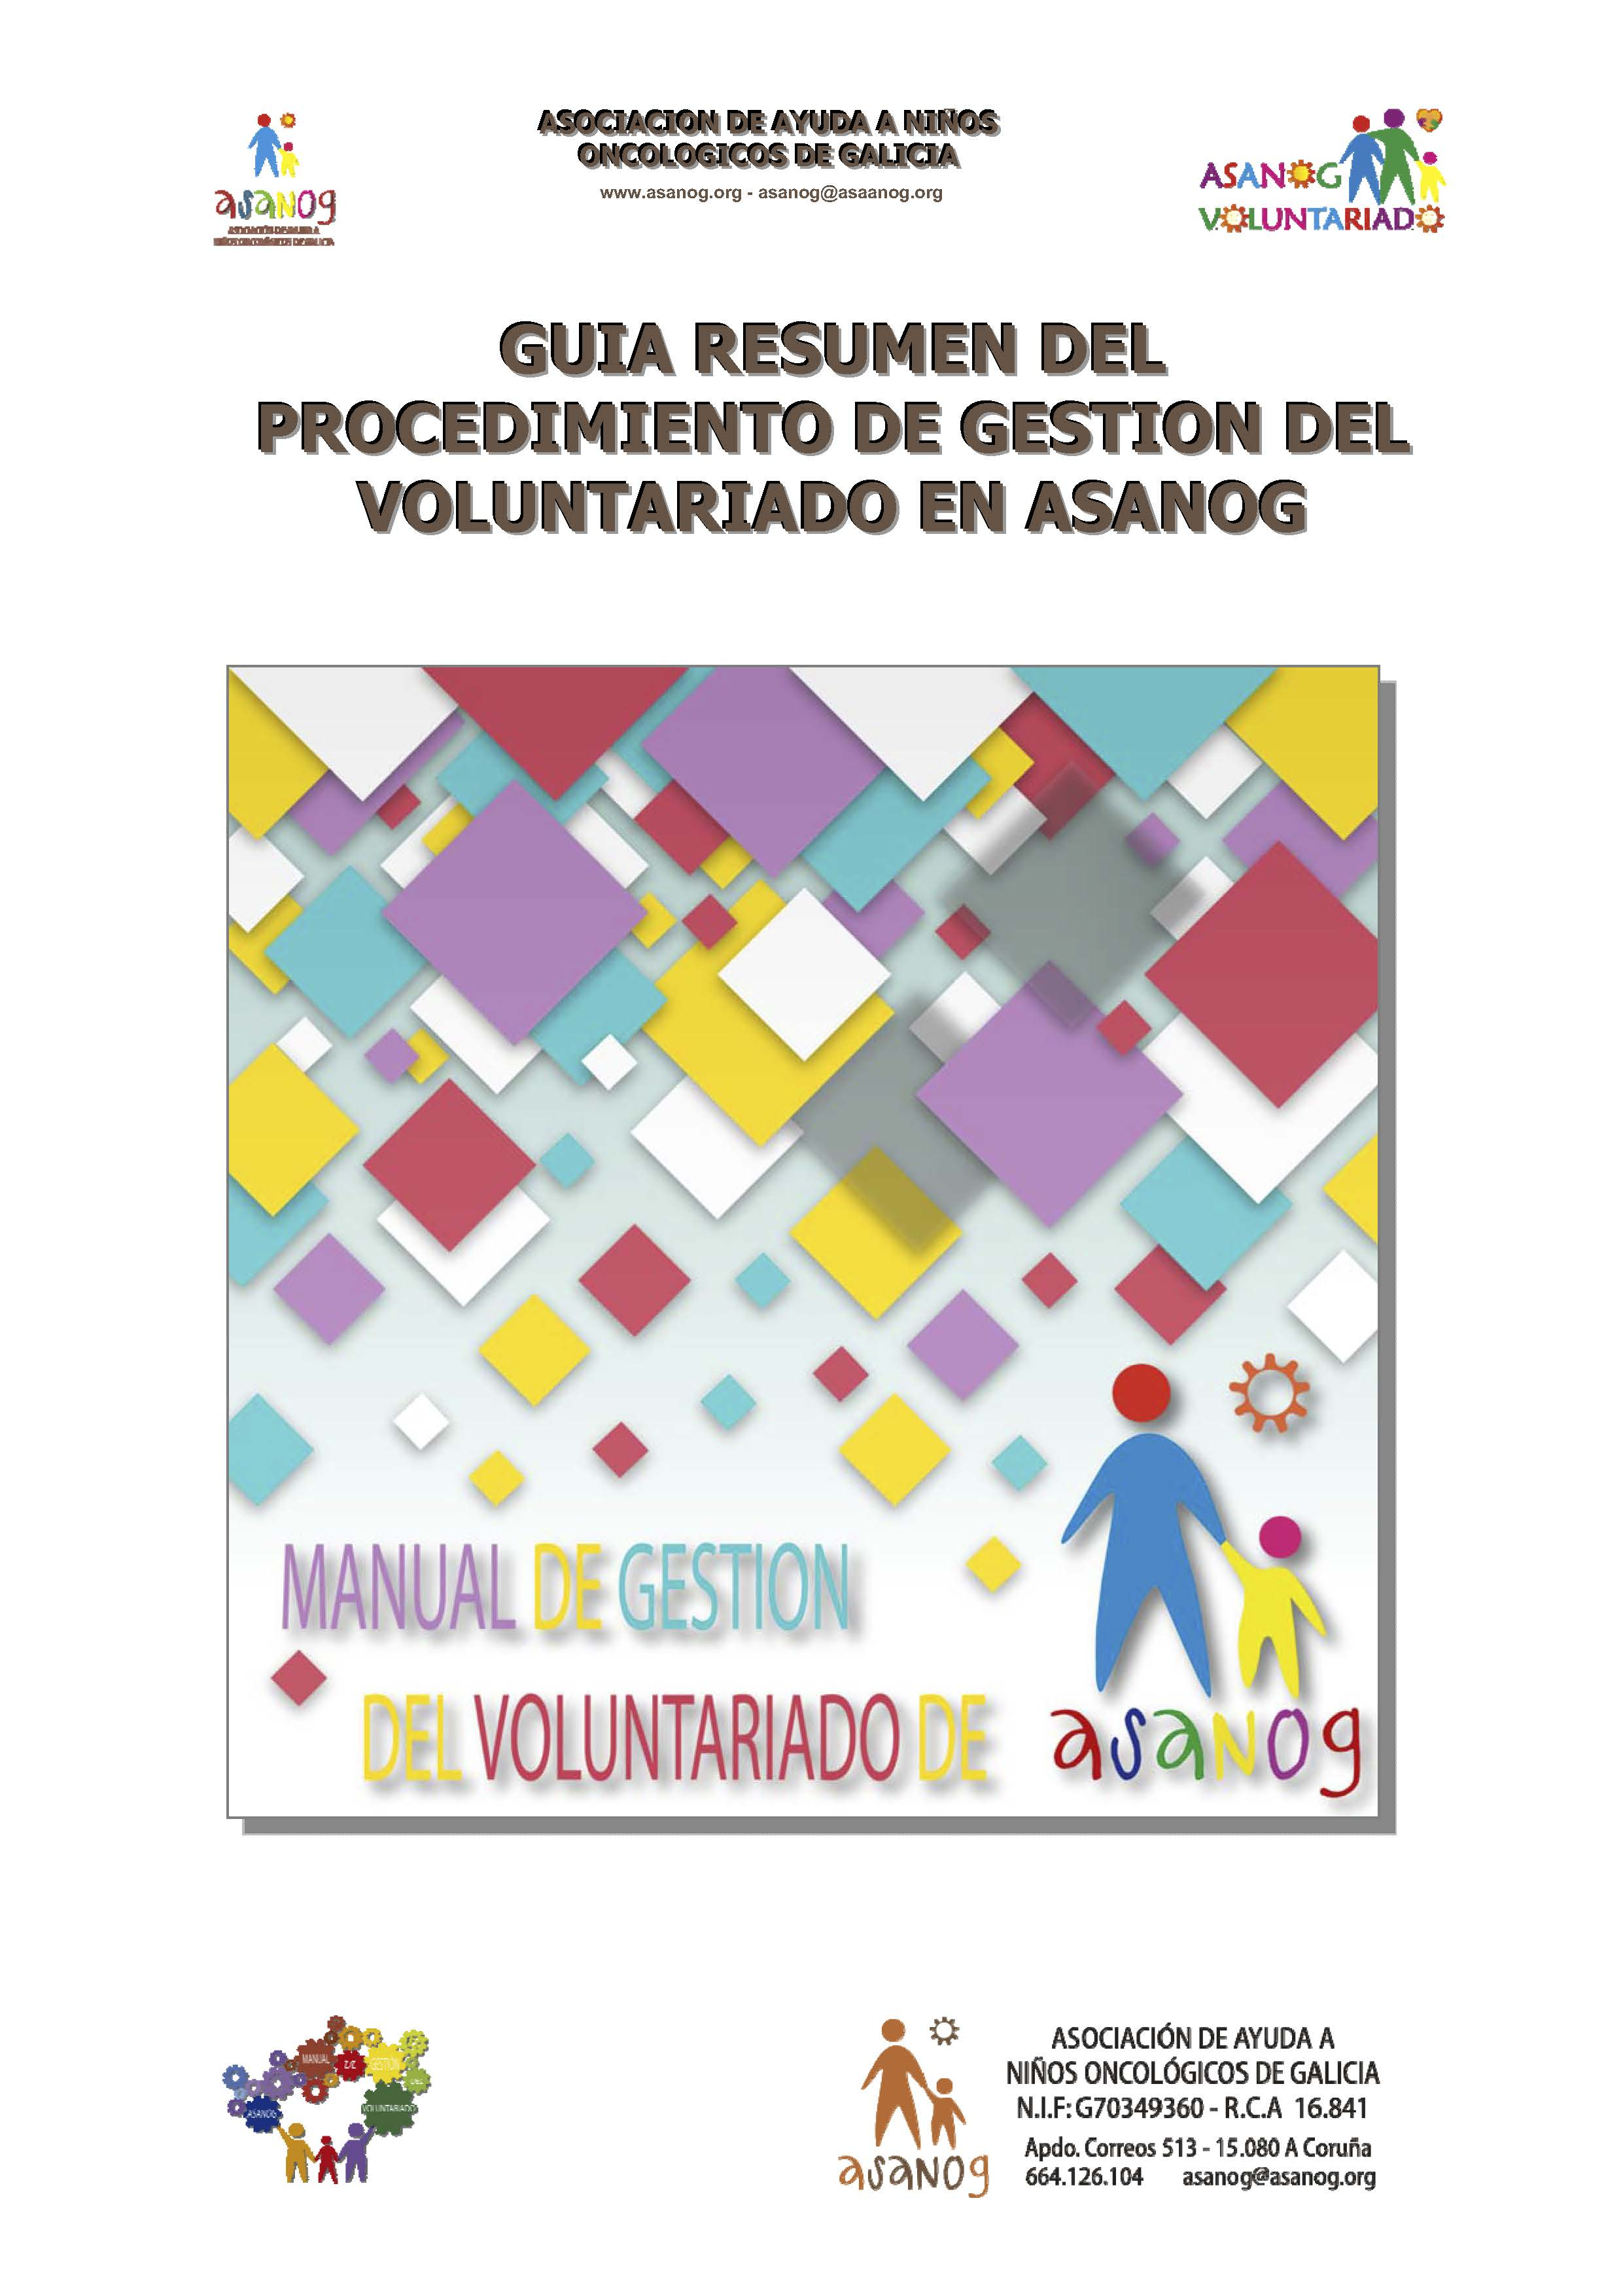 PORTADA MANUAL GESTION VOLUNTARIADO ASANOG PROCEDIMIENTO